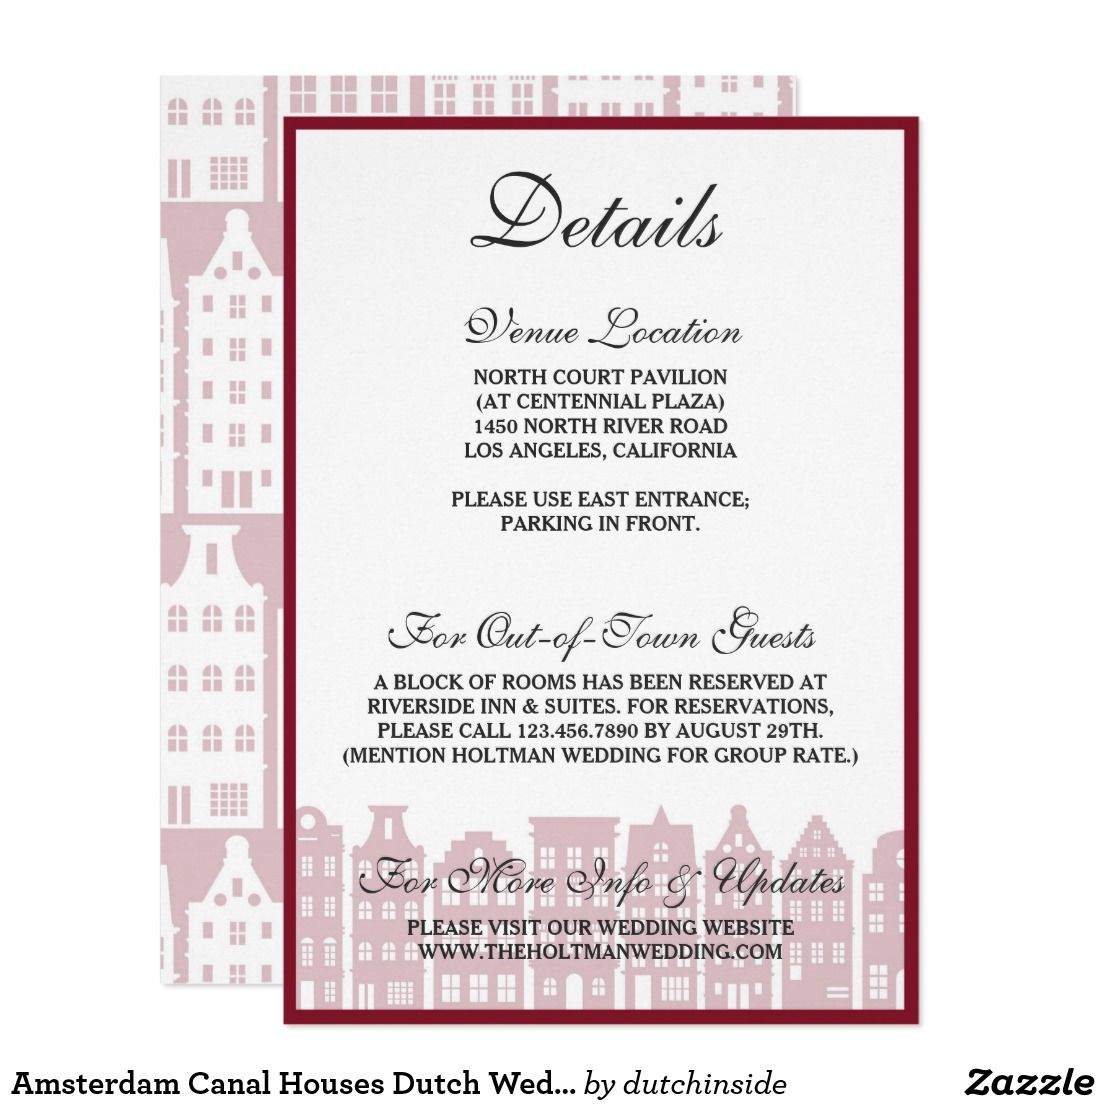 Amsterdam Canal Houses Dutch Wedding Details Card Zazzle Com Wedding Details Card Amsterdam Canals Canal House